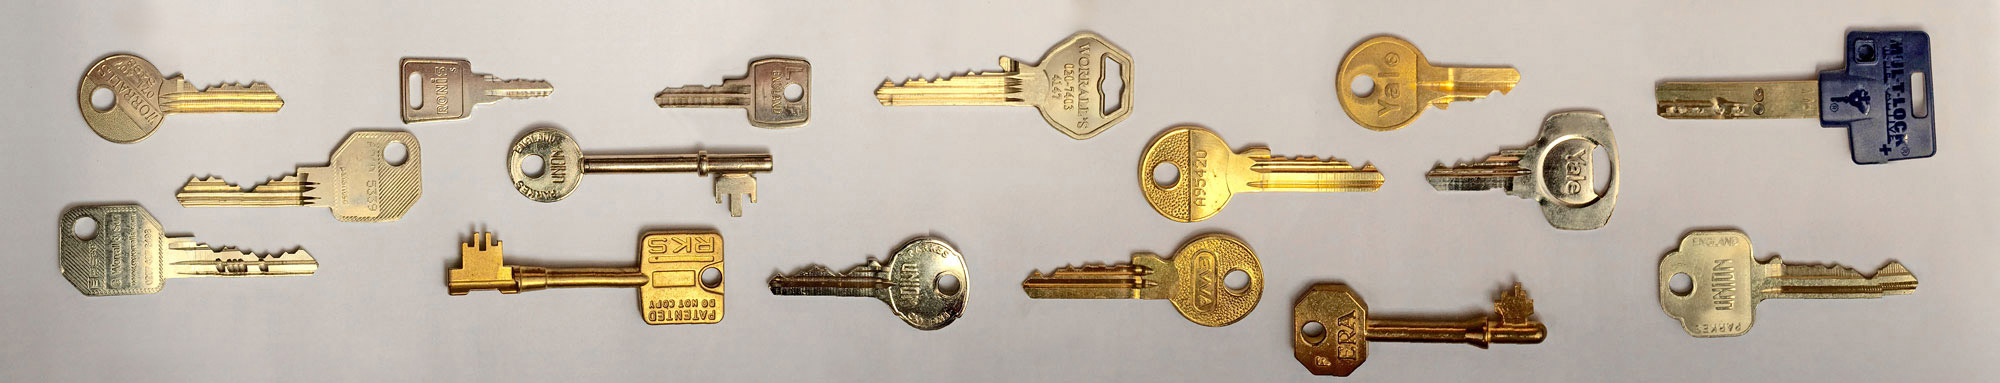 Keys for office door locks, safes, cabinets, desks, etc.